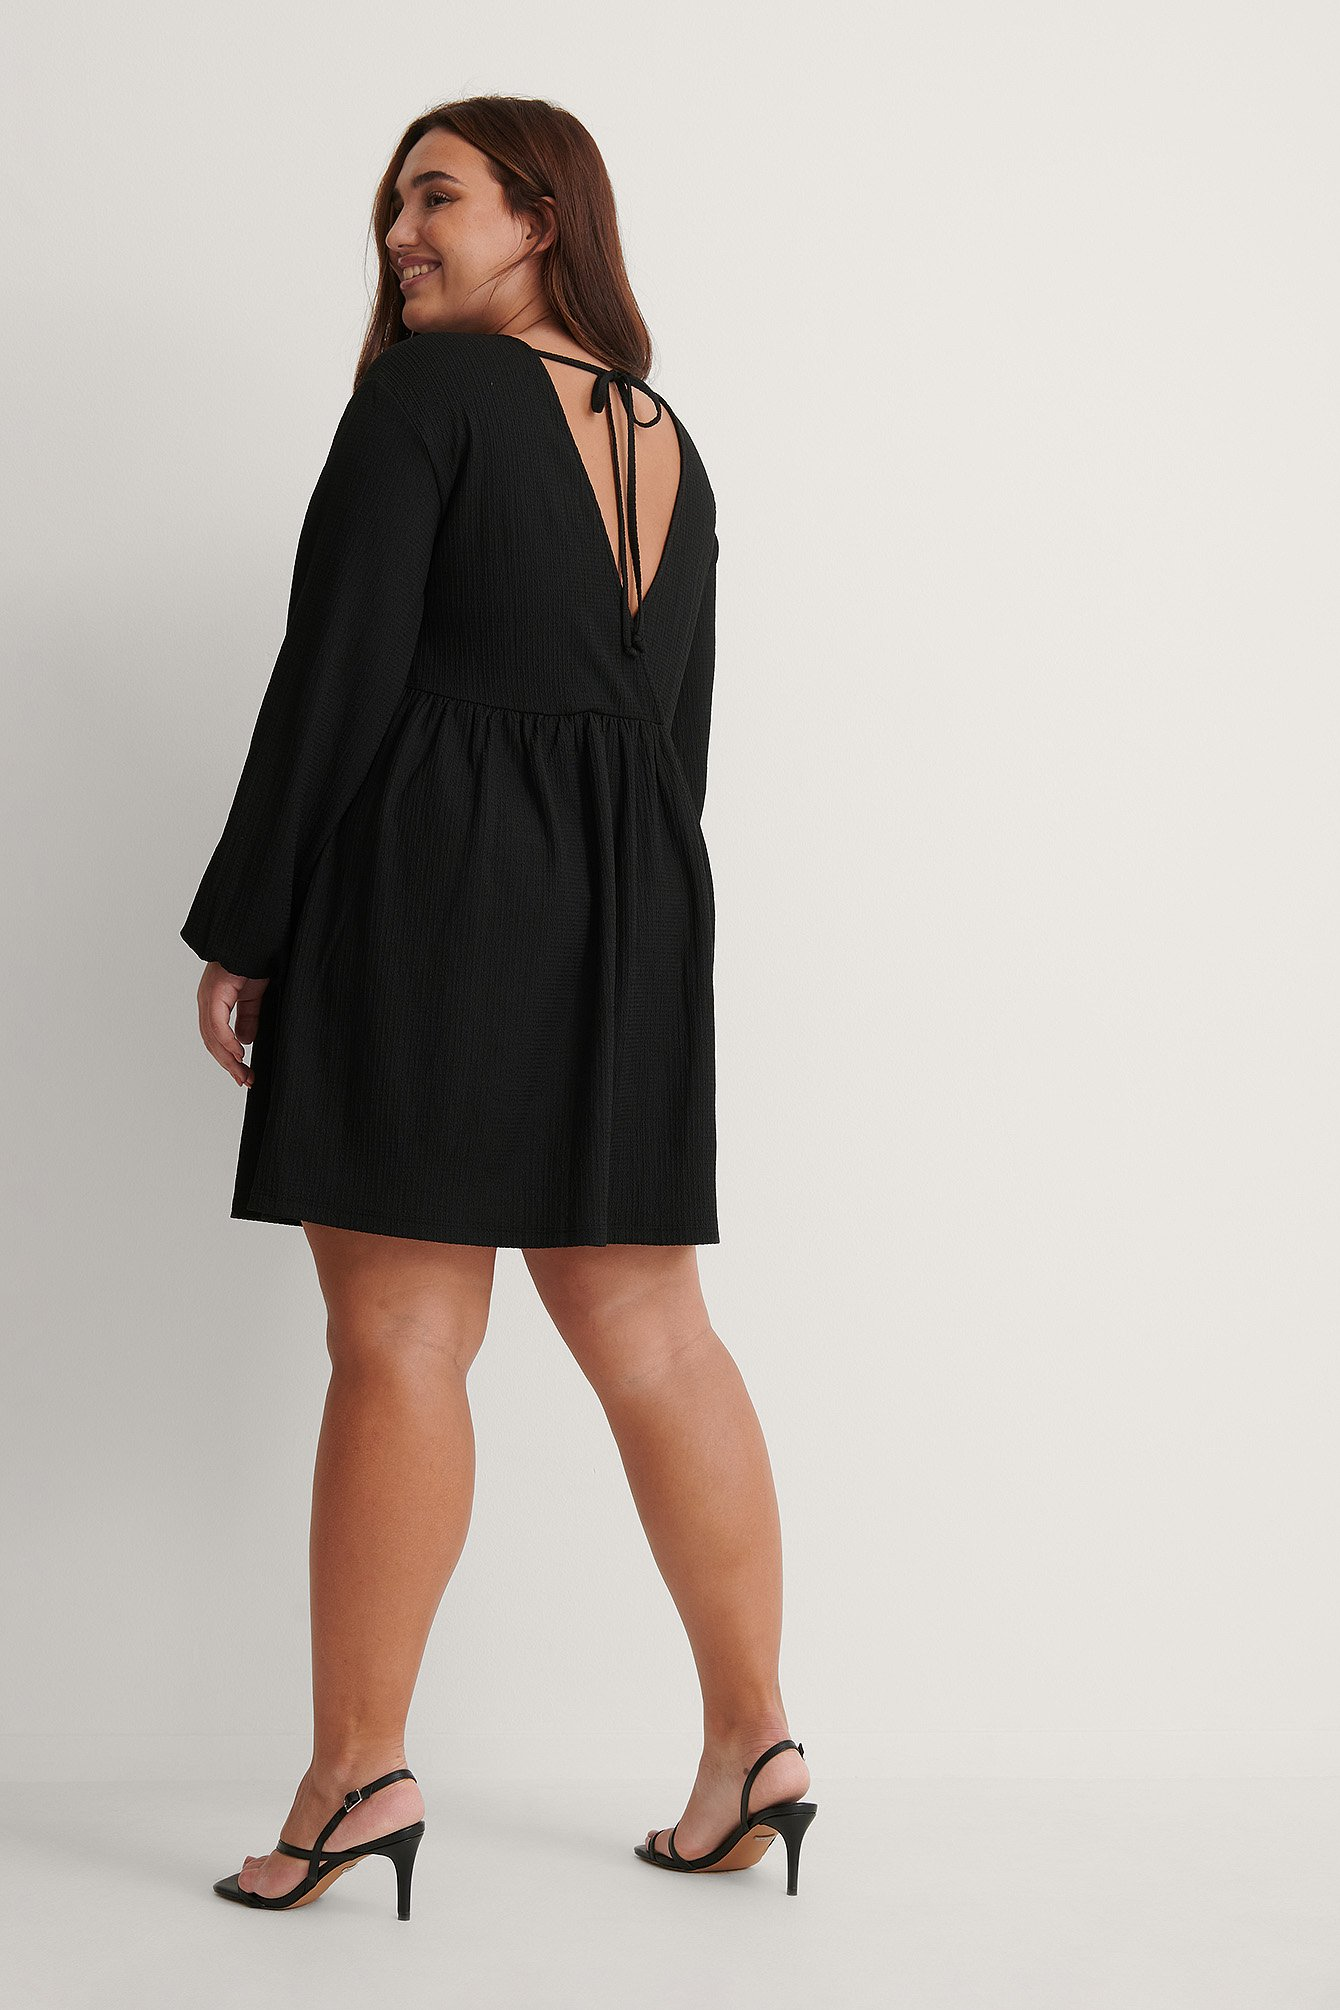 Black Recycled Knot Back Detail Dress